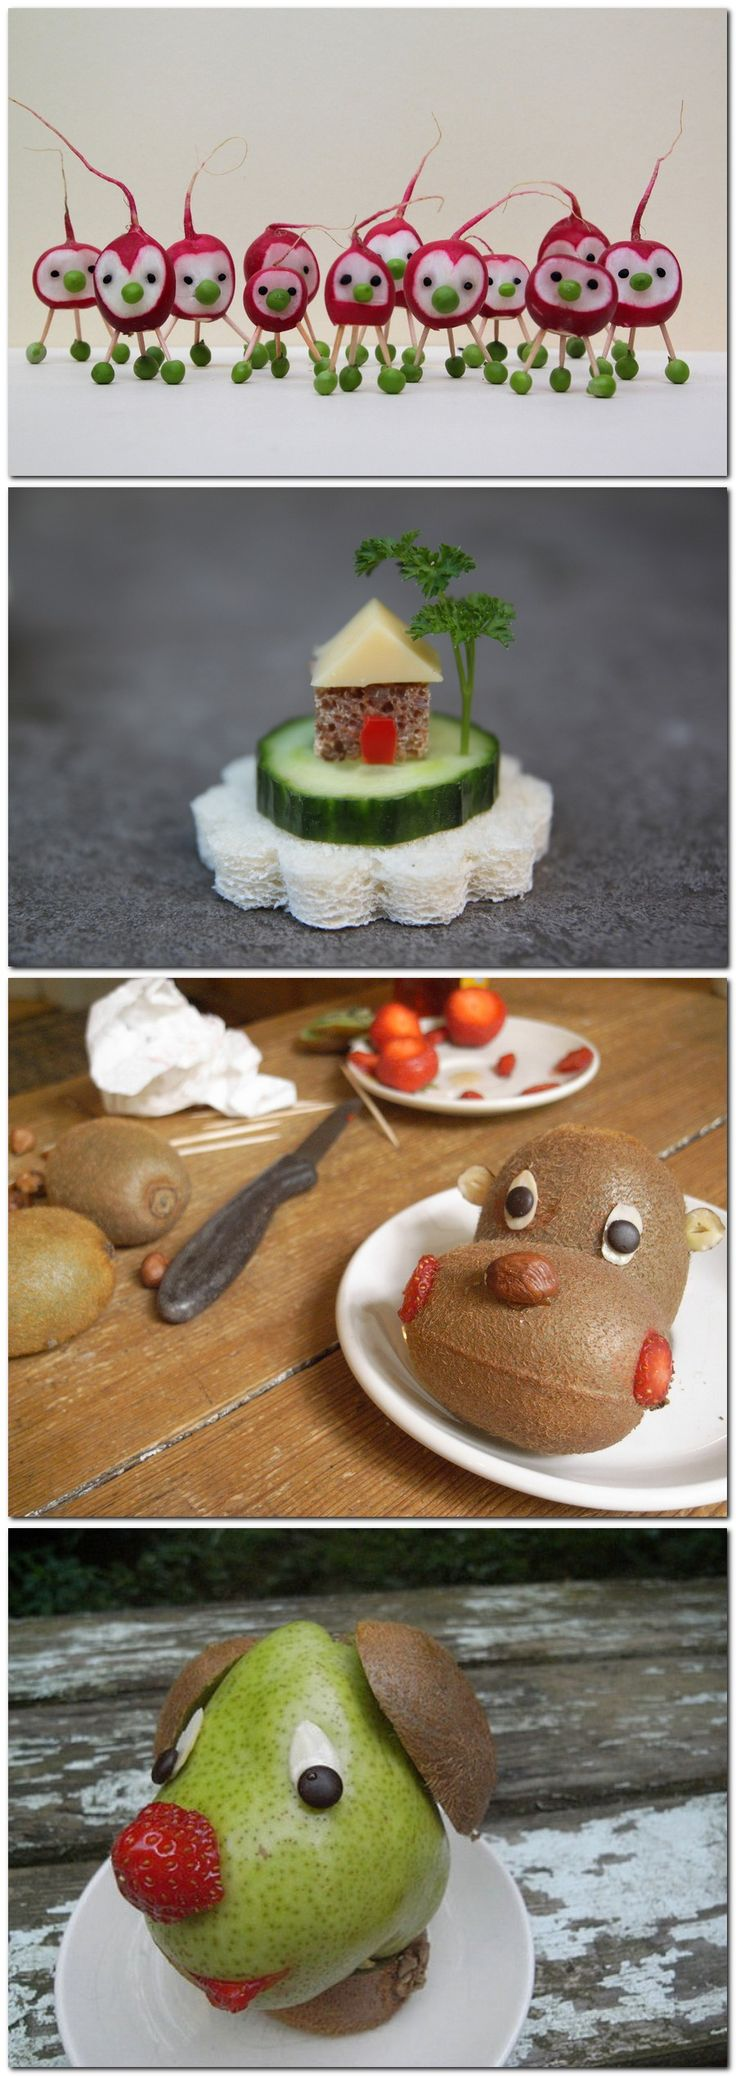 Fun Food by Sabine Timm - Such a fun way for everyone in the family to get more veggies!